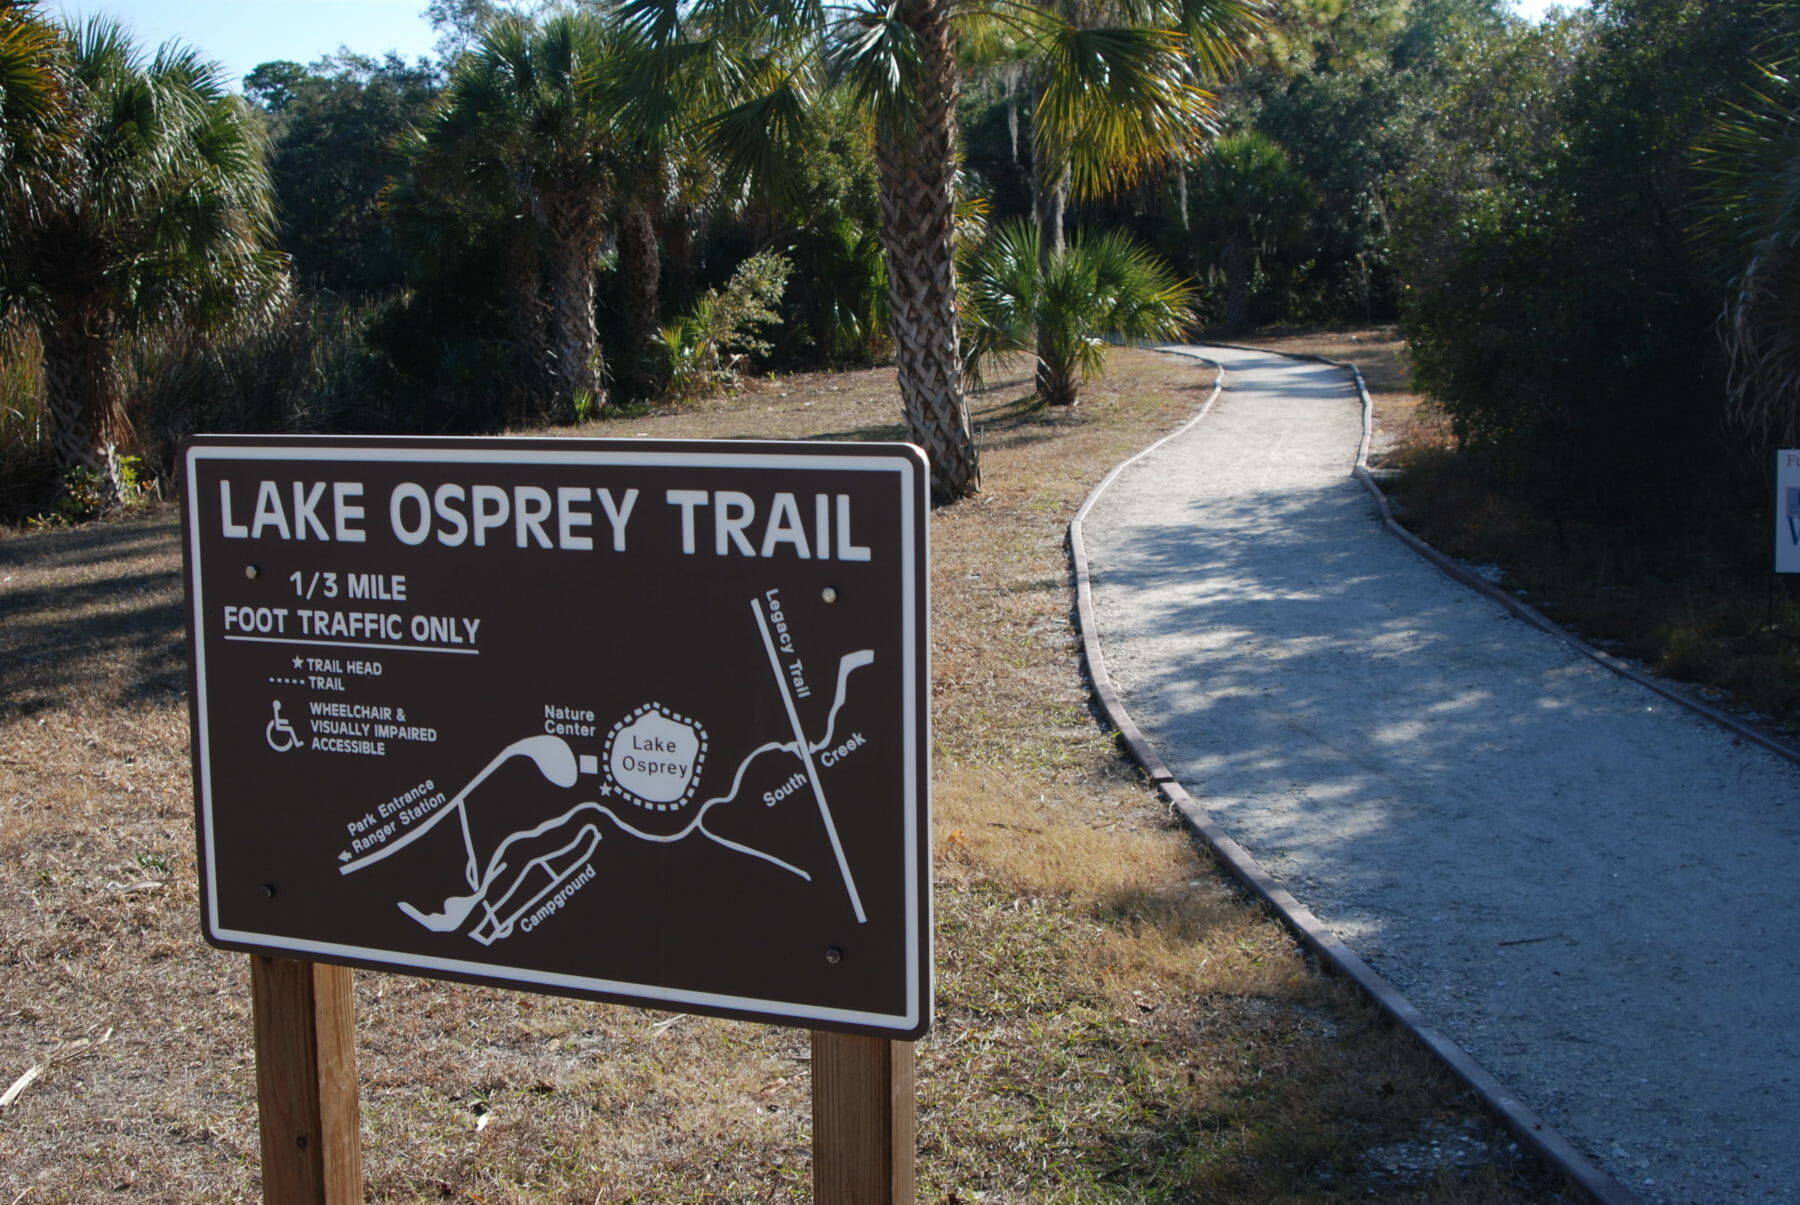 Lake Osprey Trail